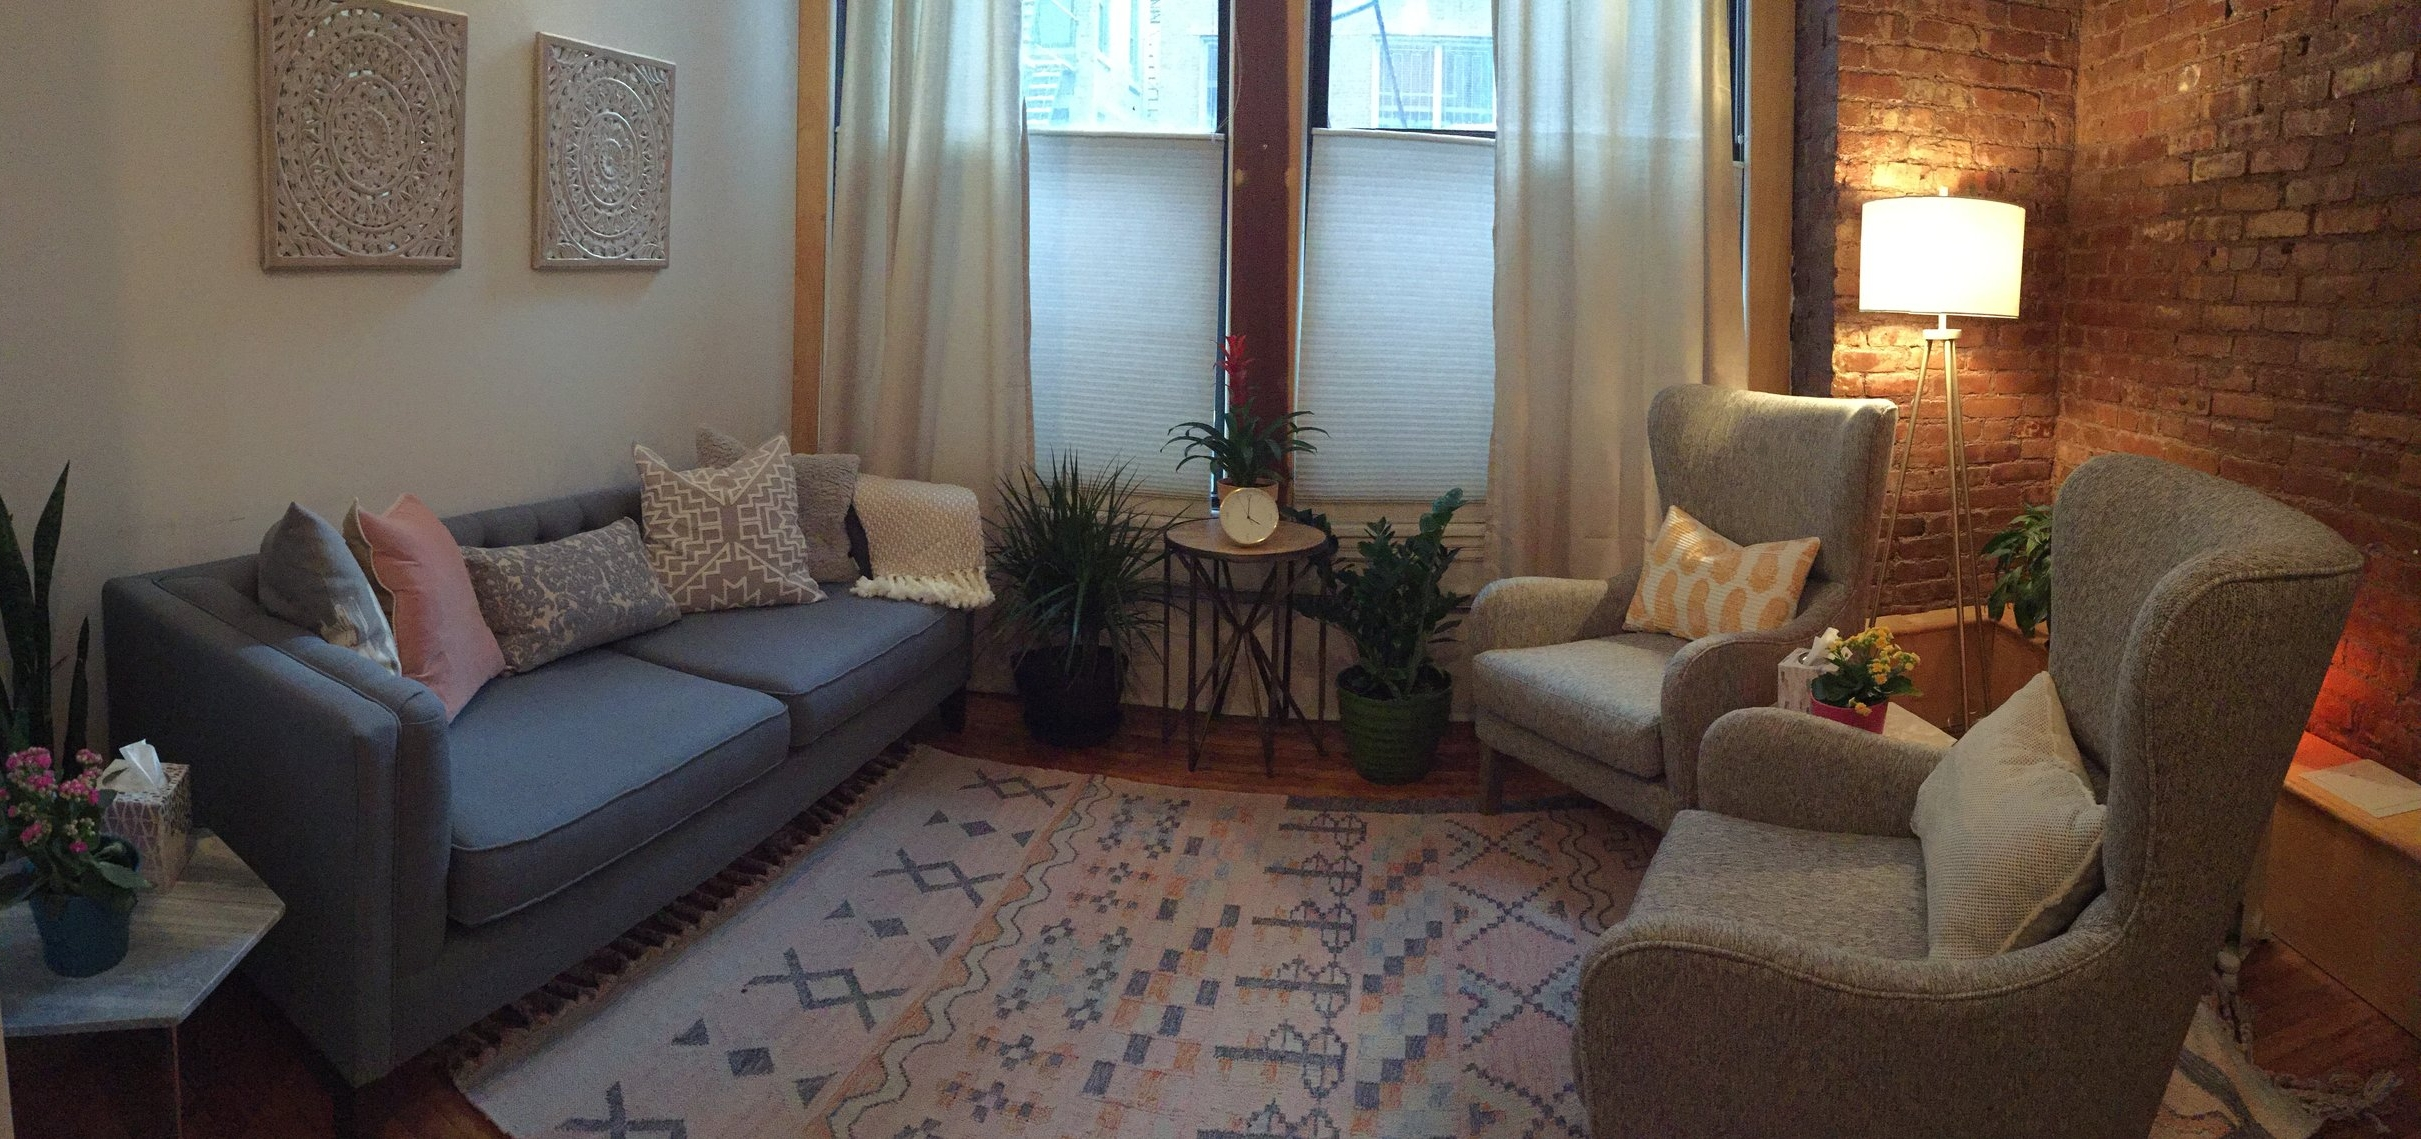 Holistic Psychotherapy in the Heart of Union Square